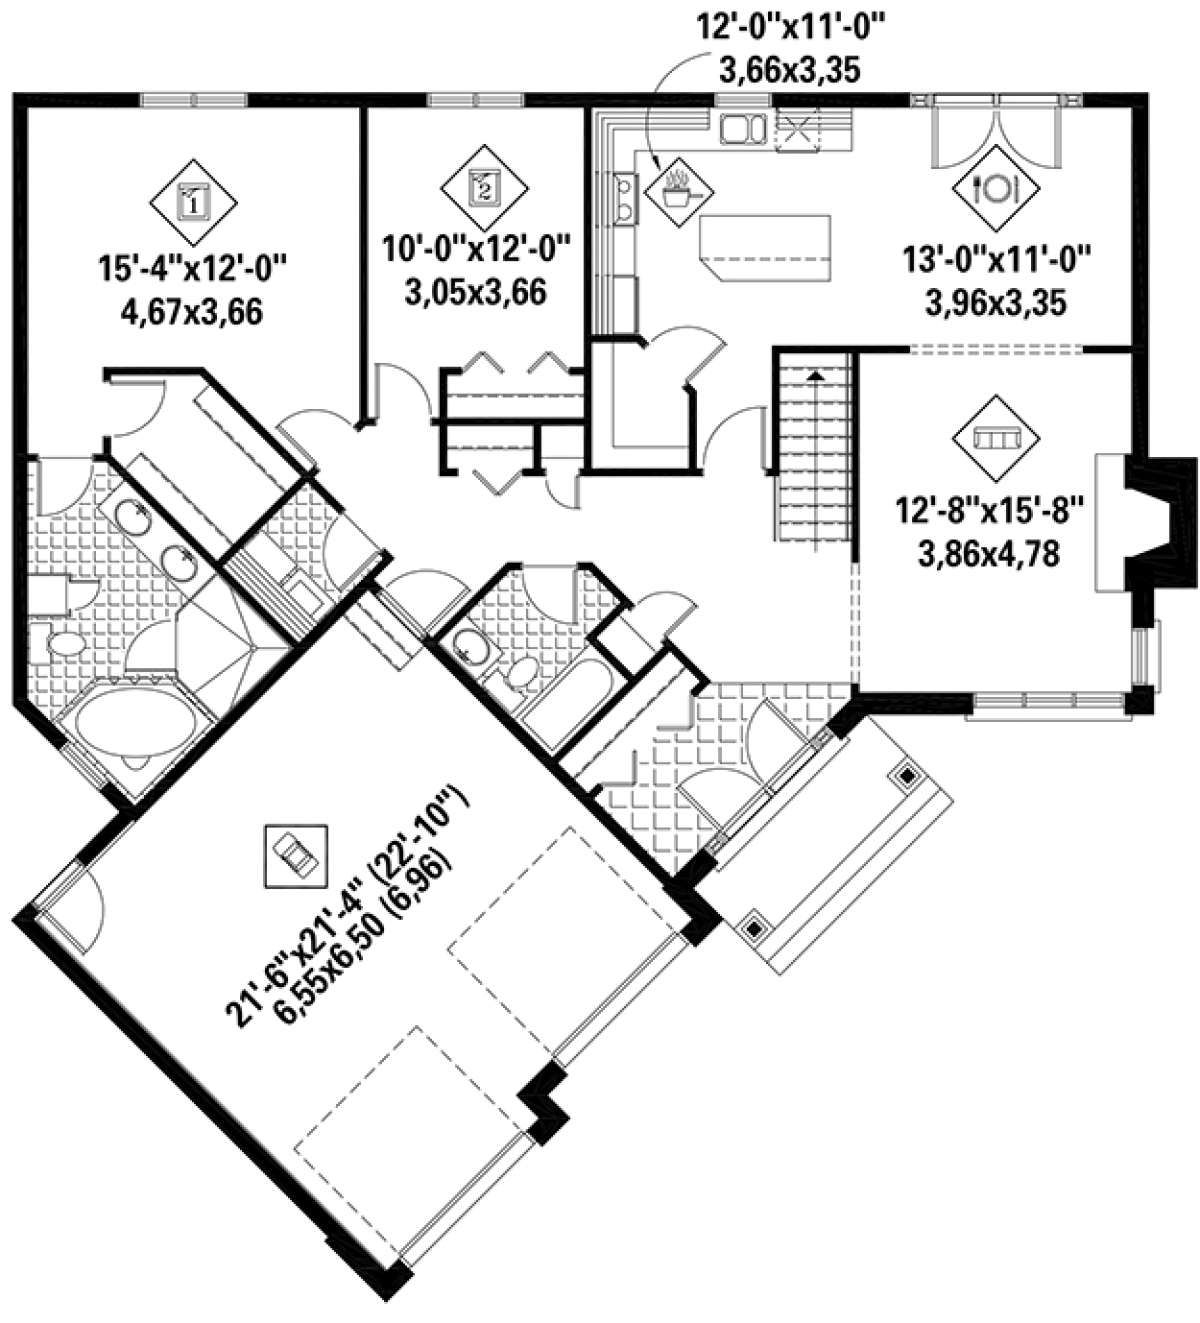 Photo of House Plan 6146-00329 – Cottage Plan: 1,553 Square Feet, 2 Bedrooms, 2 Bathrooms